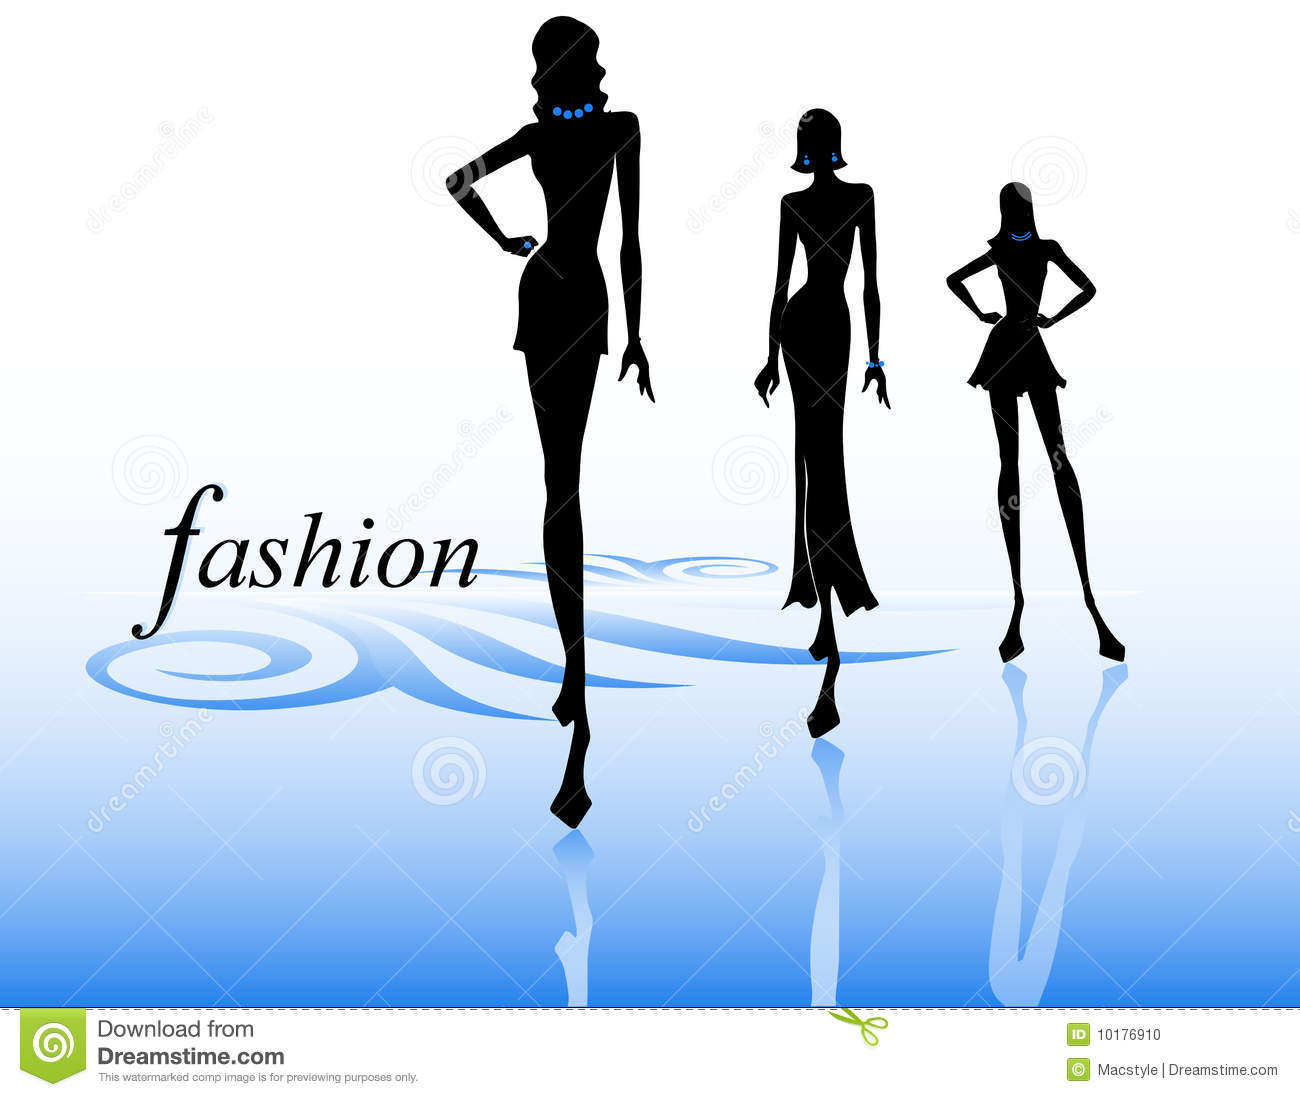 Fashion Show Silhouettes Stock Vector Illustration Of Body